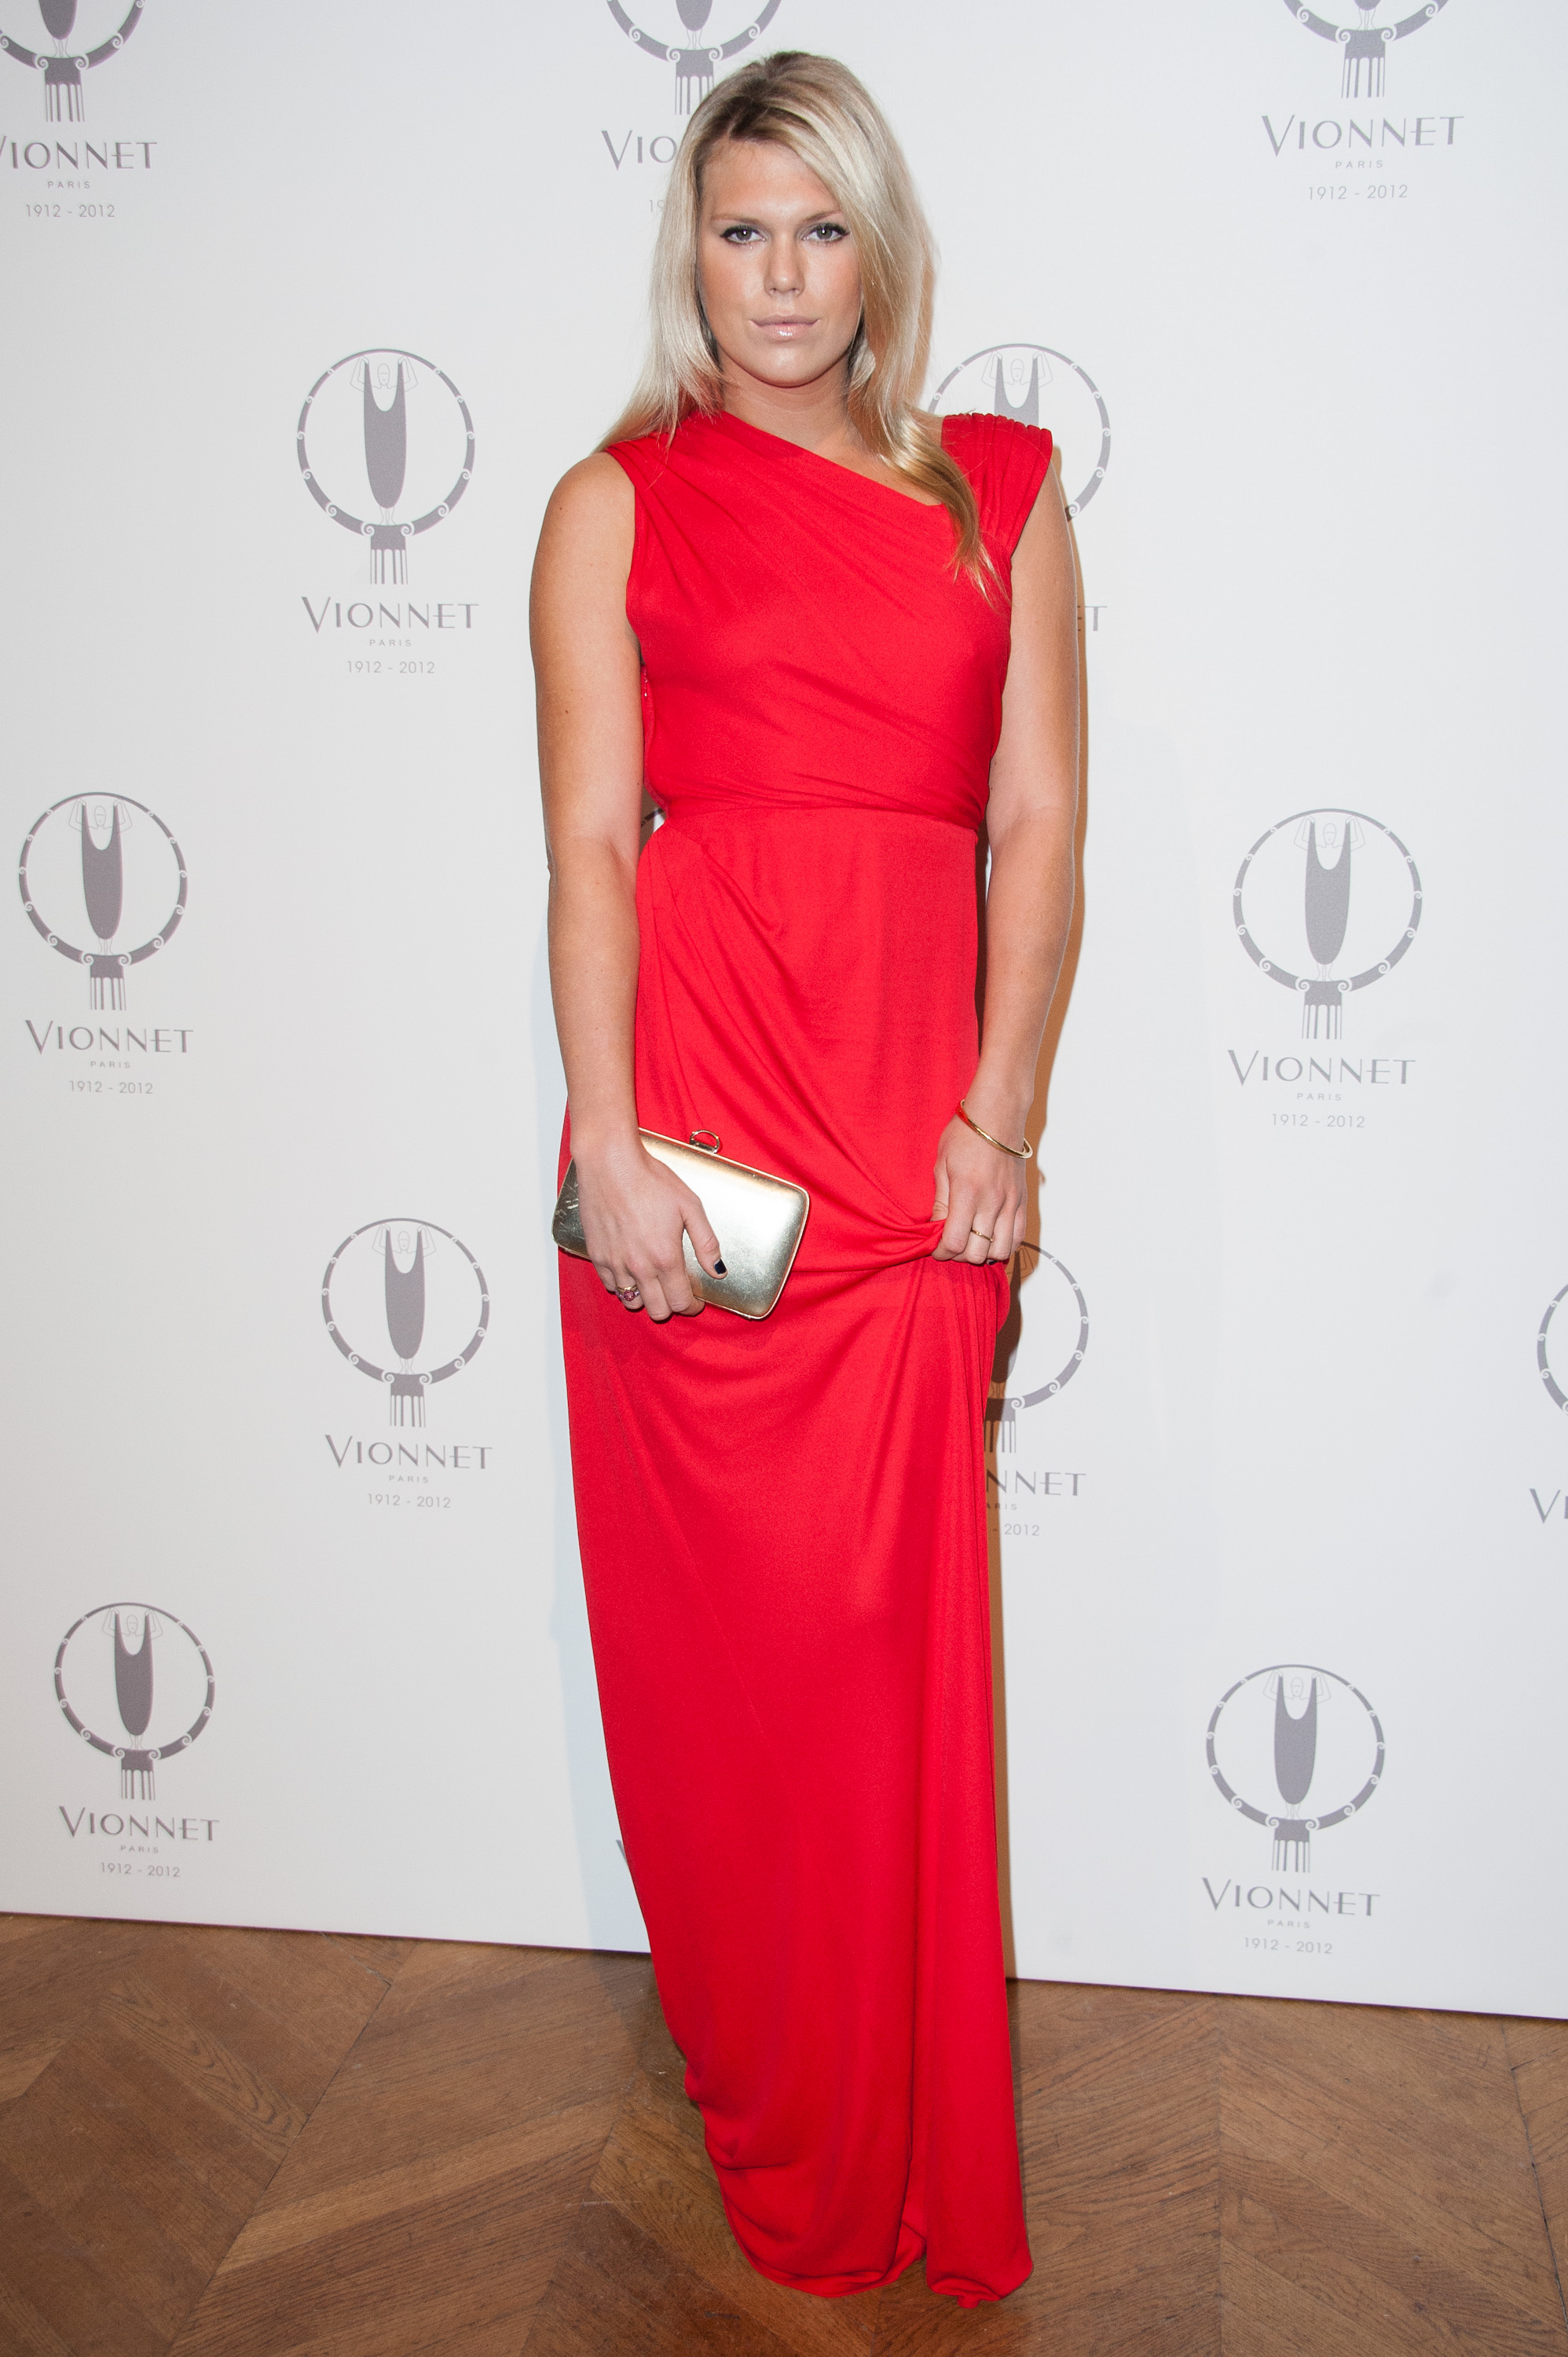 Alexandra Richards opted for statement red, in this simple, but totally chic, gown at the 100th anniversary party for Vionnet.